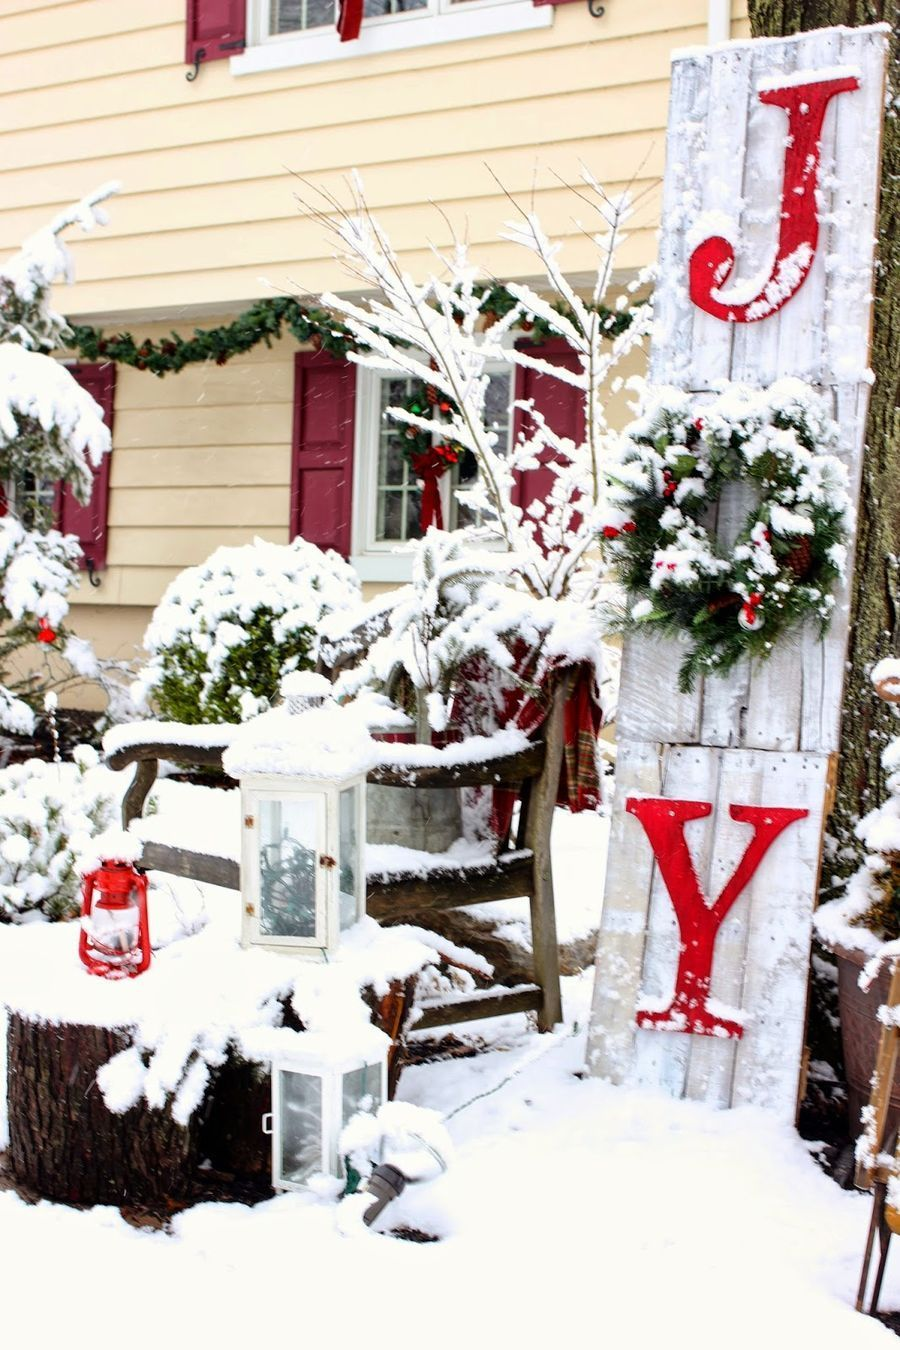 Cool Christmas Outdoor Decorations Ideas 73 Christmas Decorations Diy Outdoor Christmas Porch Decor Outdoor Christmas Decorations